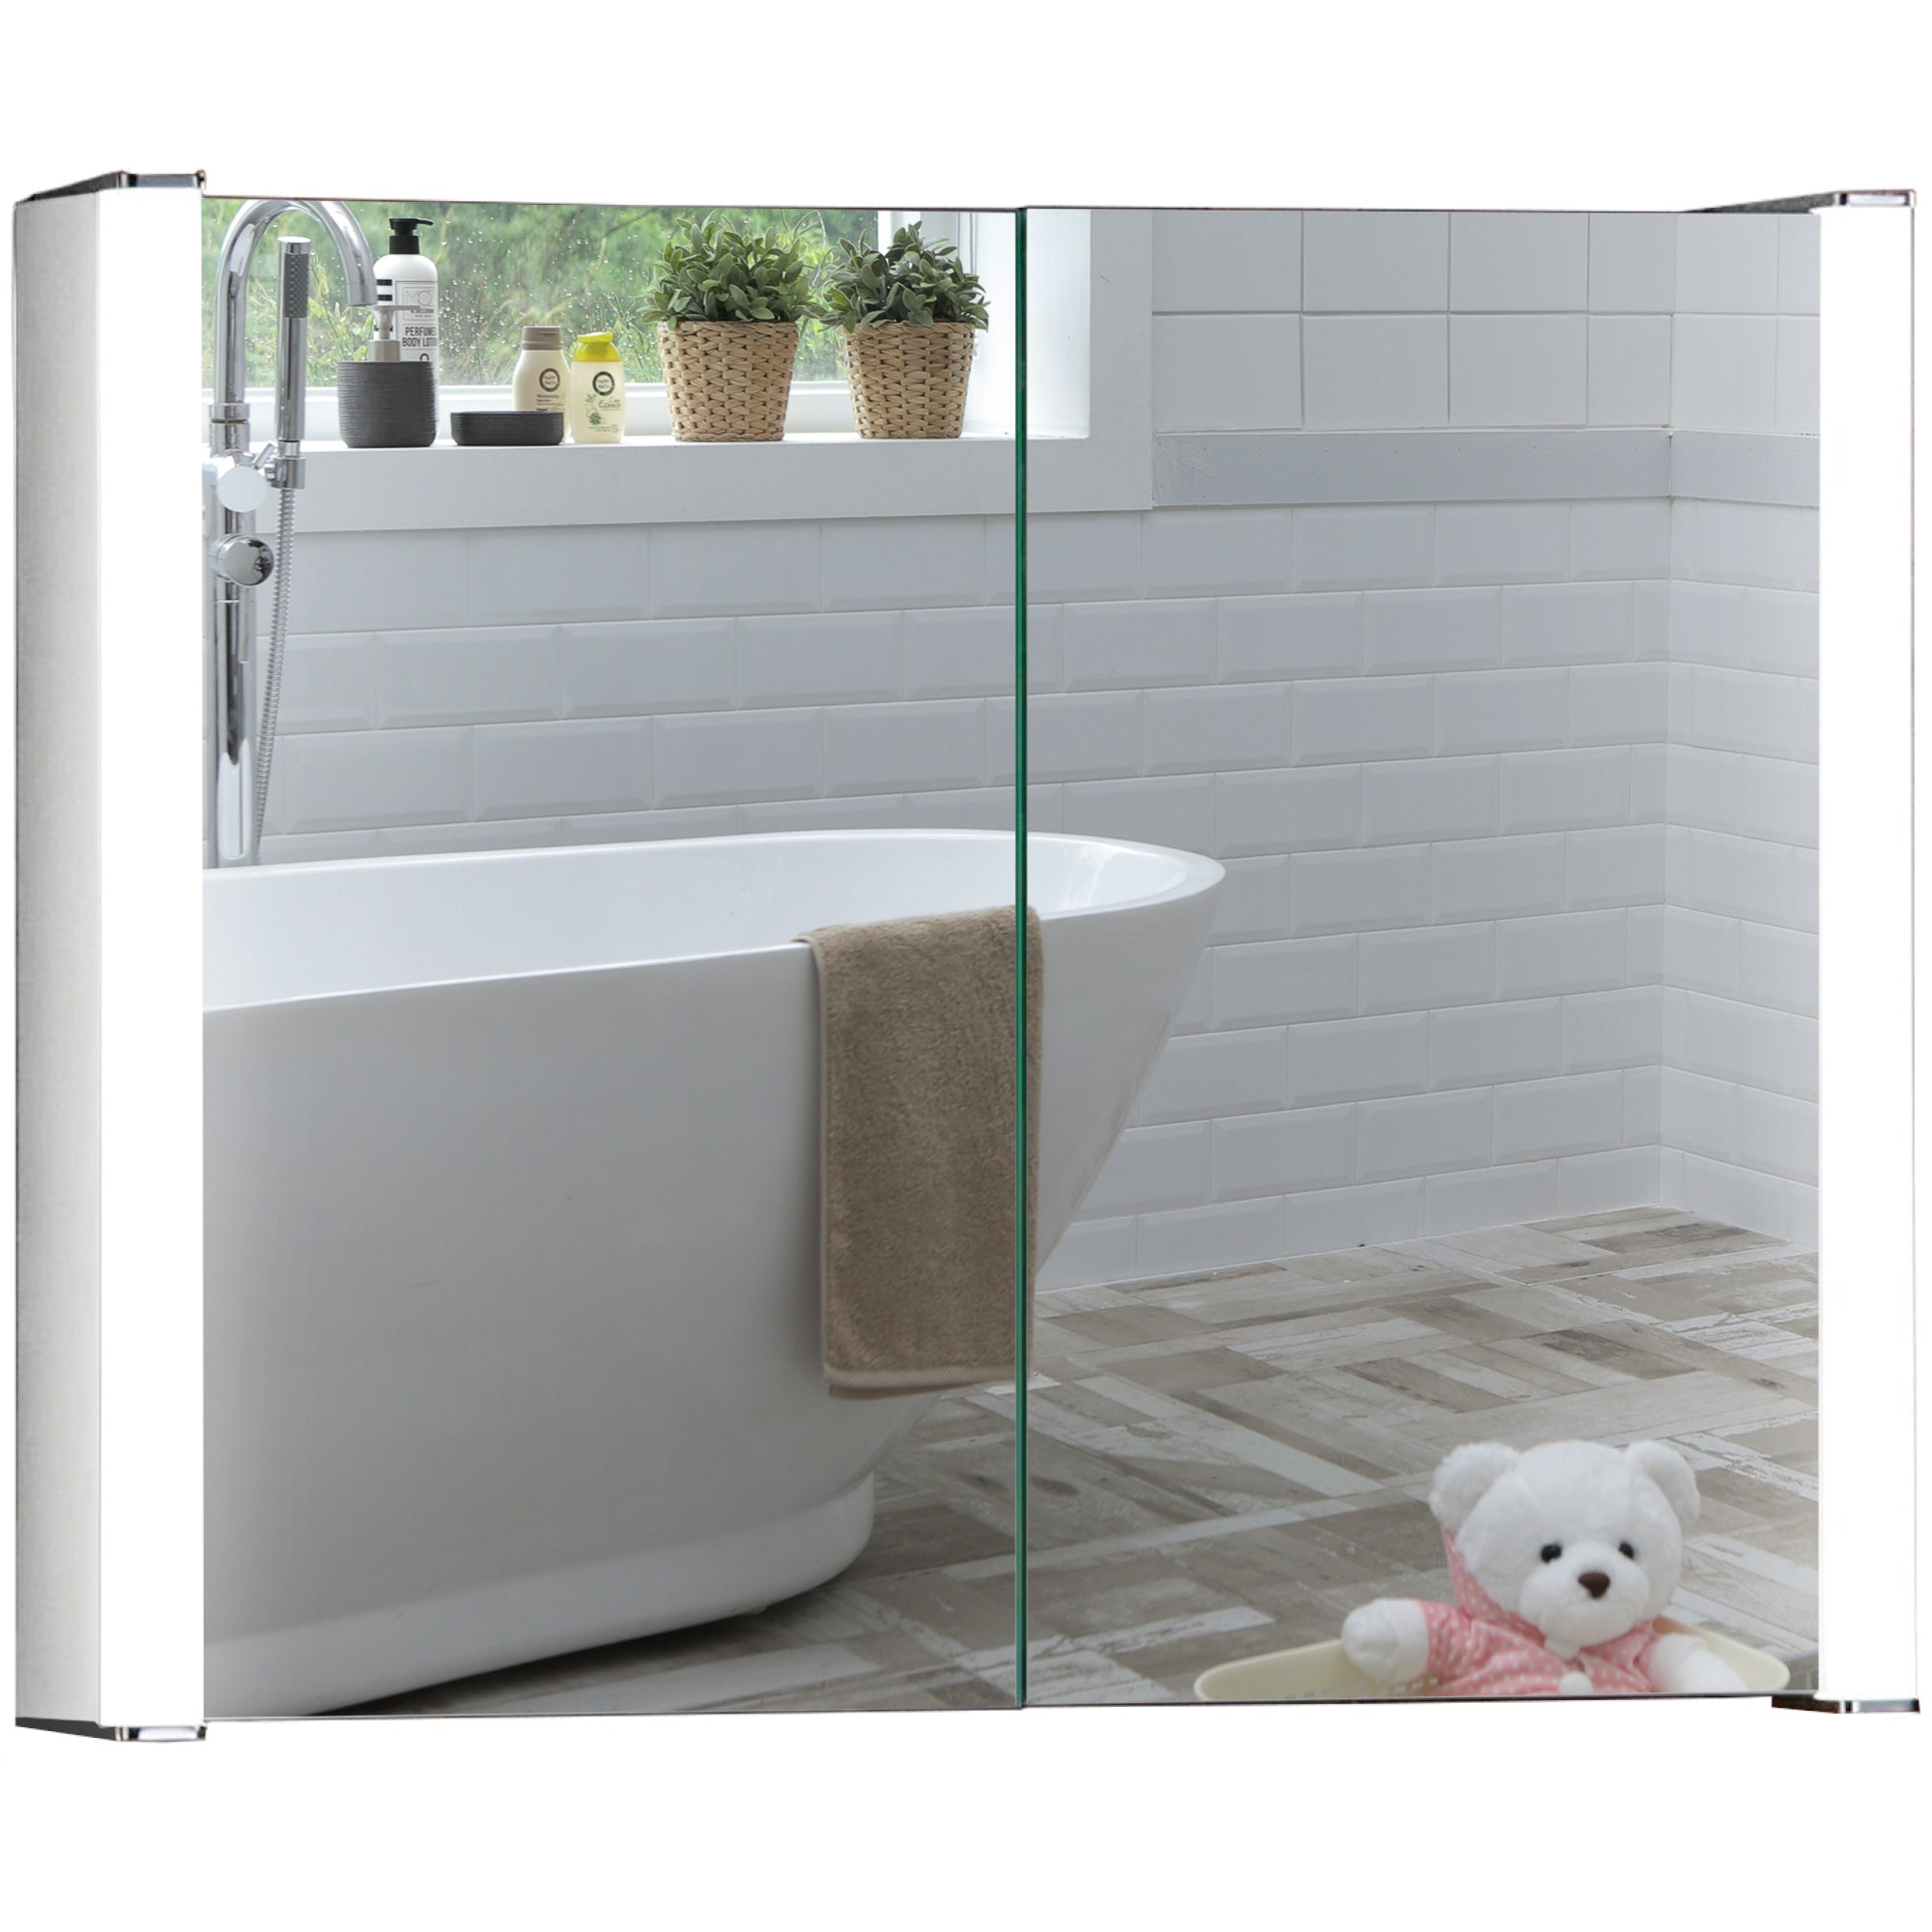 LED Illuminated Bathroom Mirror Cabinet CABM13 Size 65Hx80Wx16Dcm